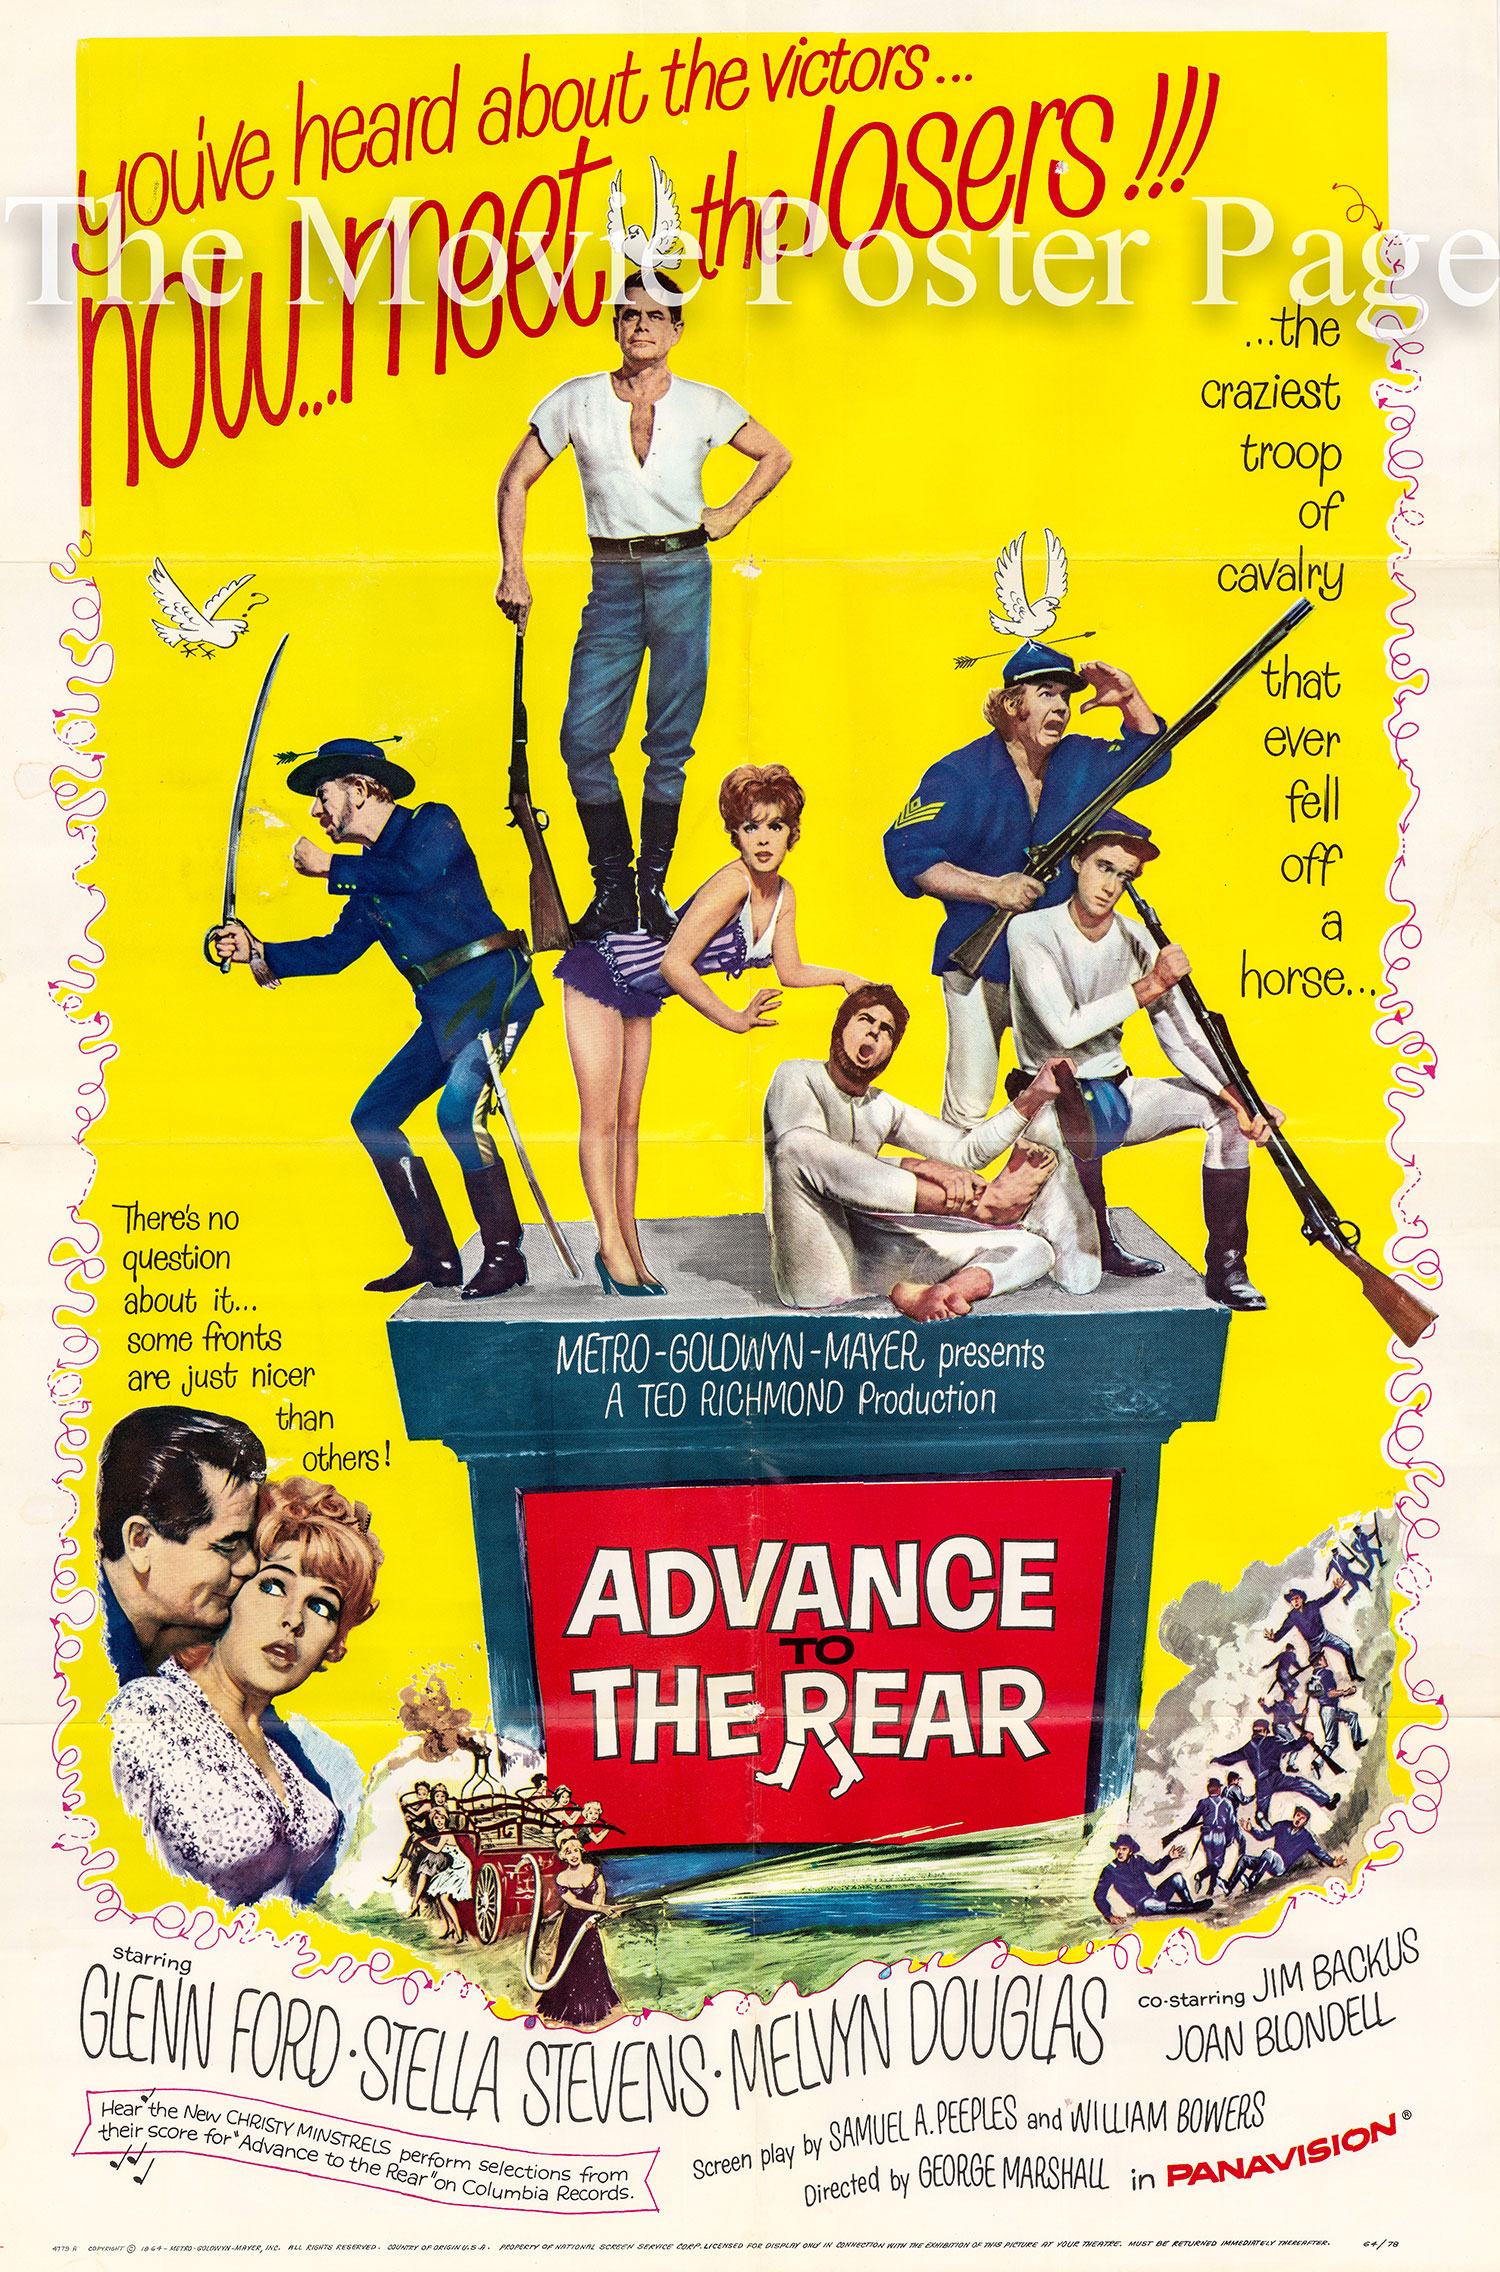 Pictured is a US one-sheet promotional poster for the 1964 George Marshall film Advance to the Rear starring Glenn Ford.